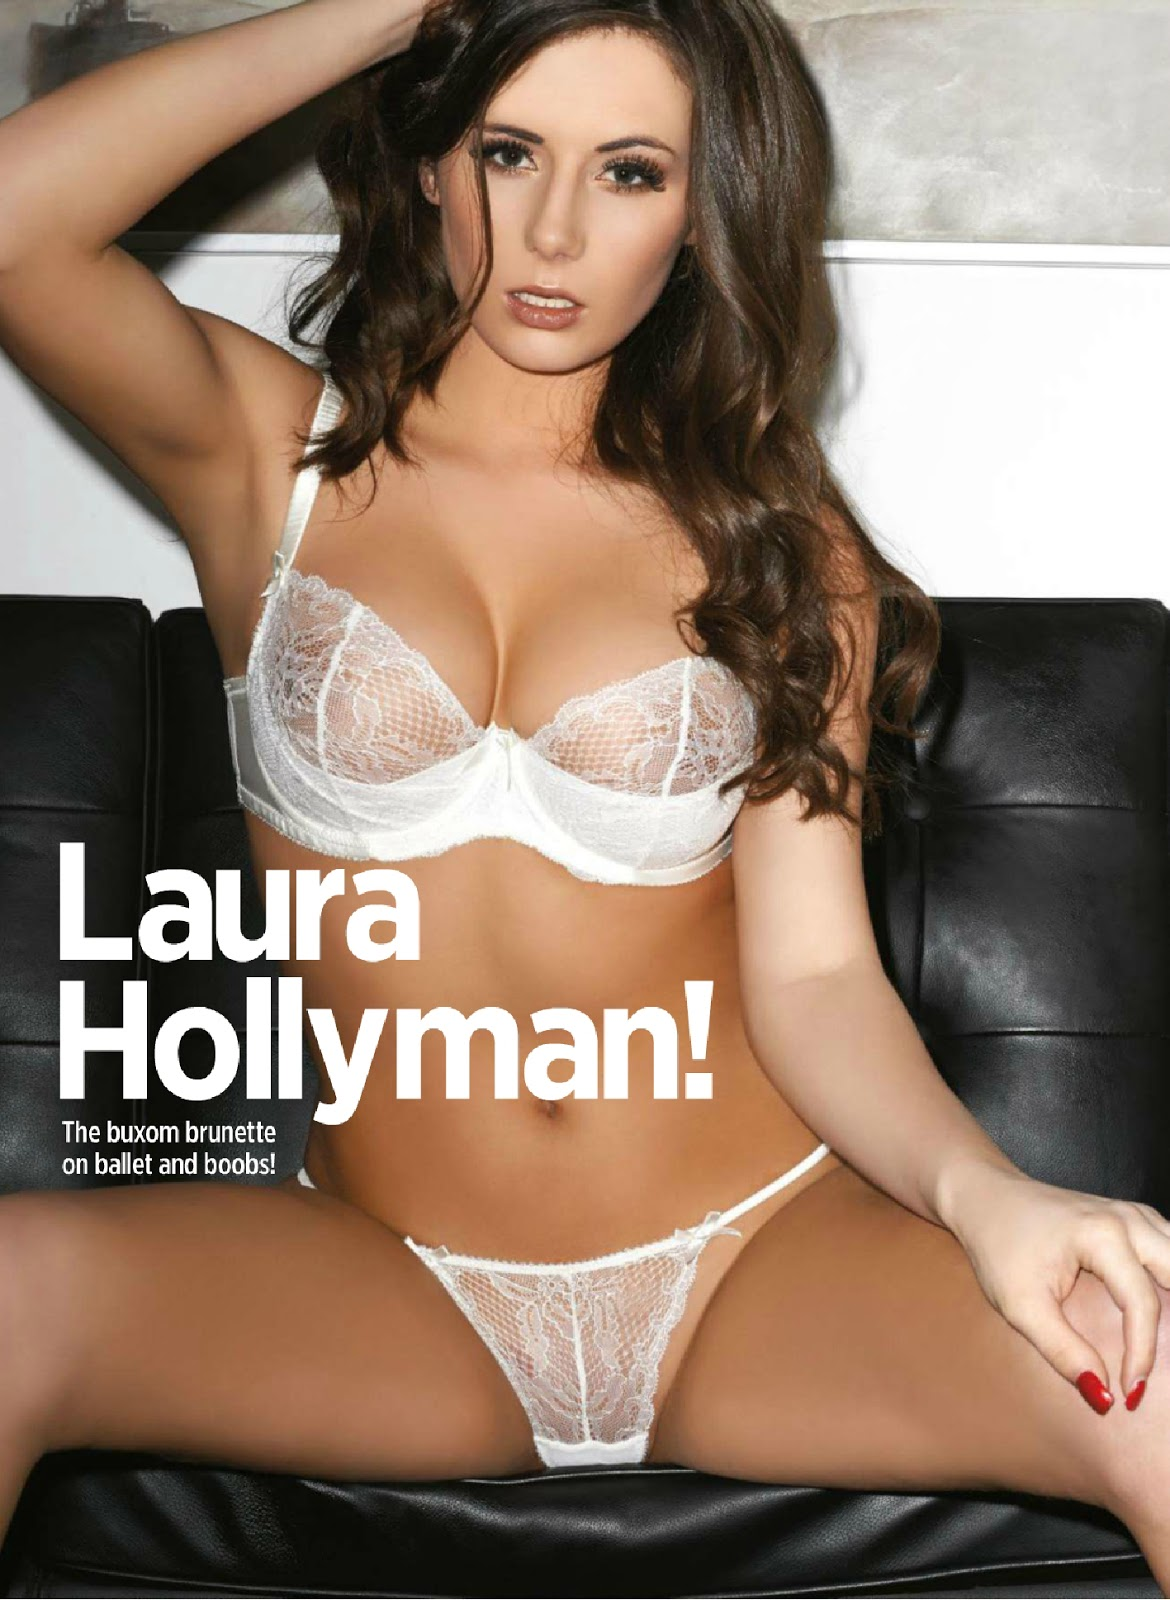 Laura Hollyman – My girlfriend cries every time I️ eat her out